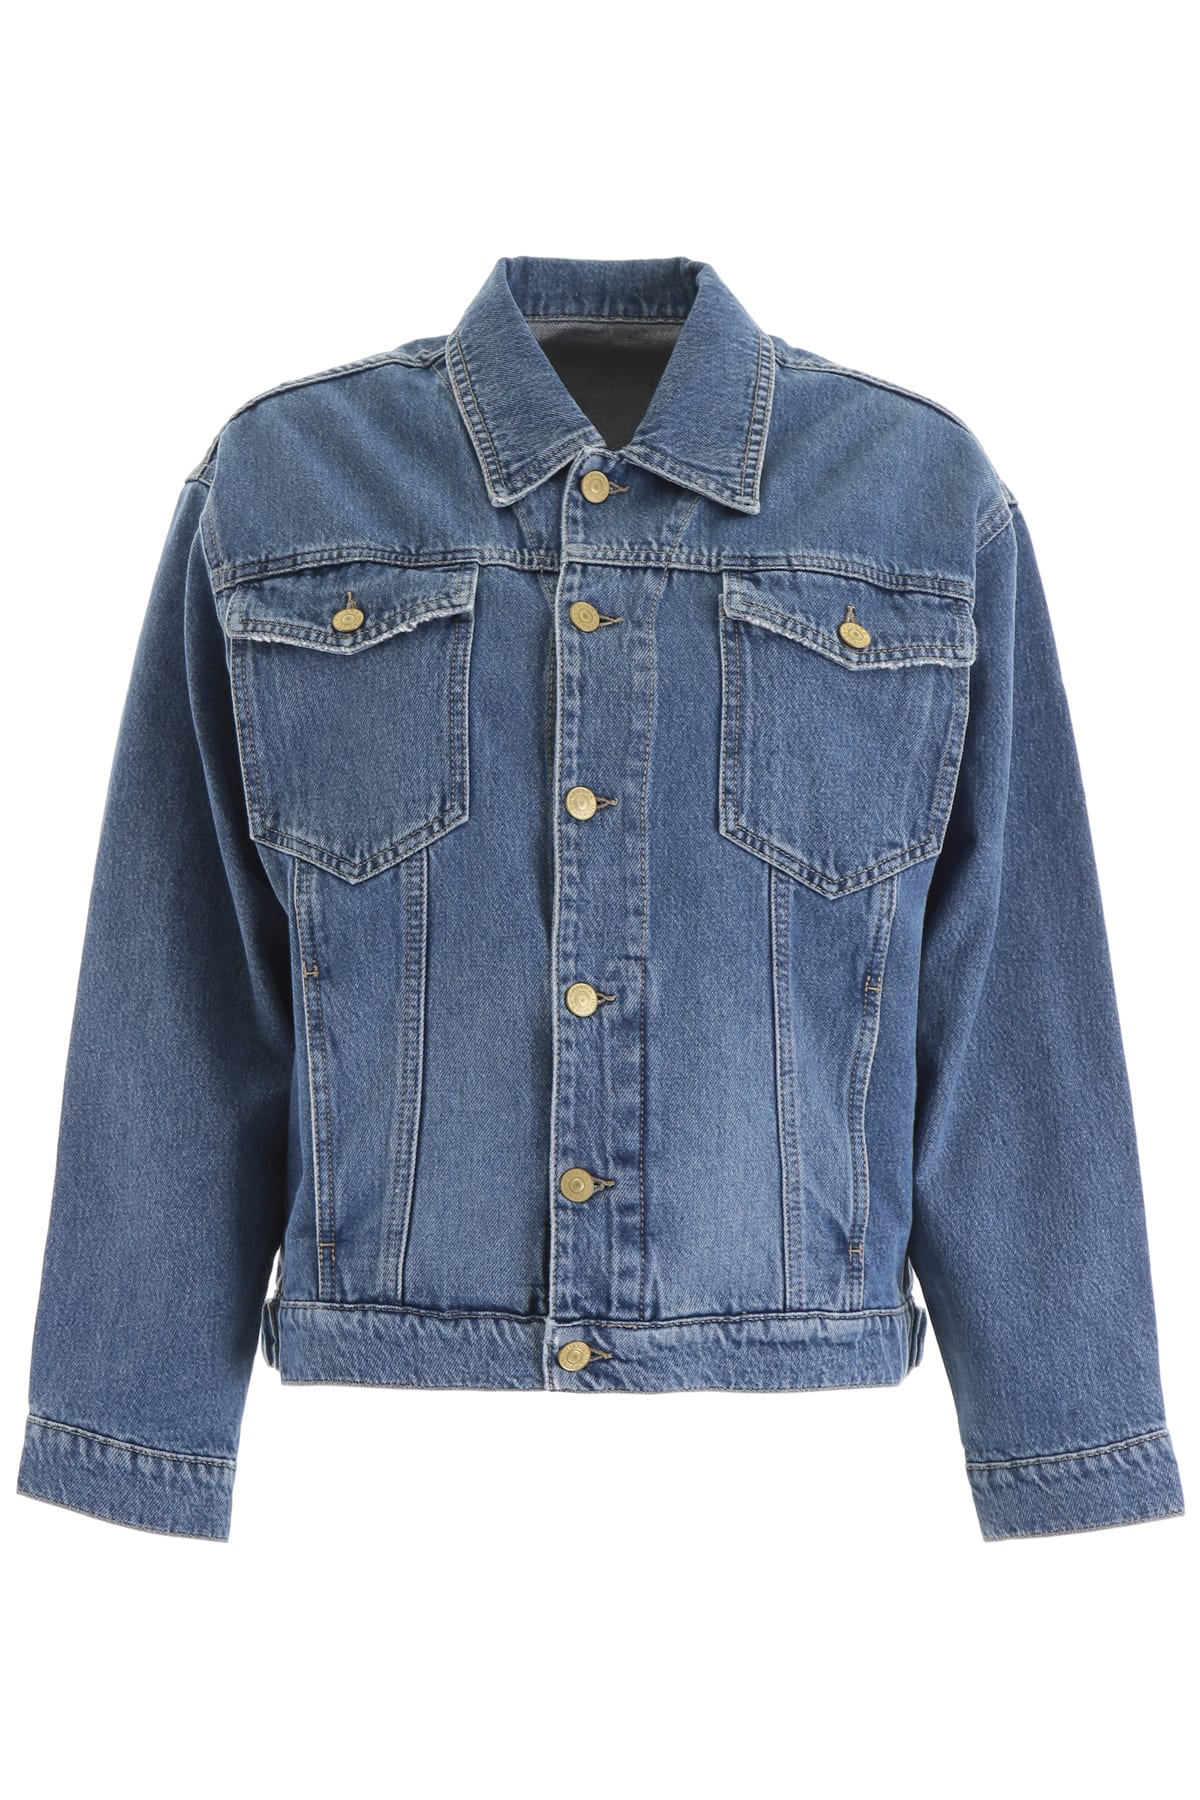 Chiara Ferragni Logomania Denim Jacket